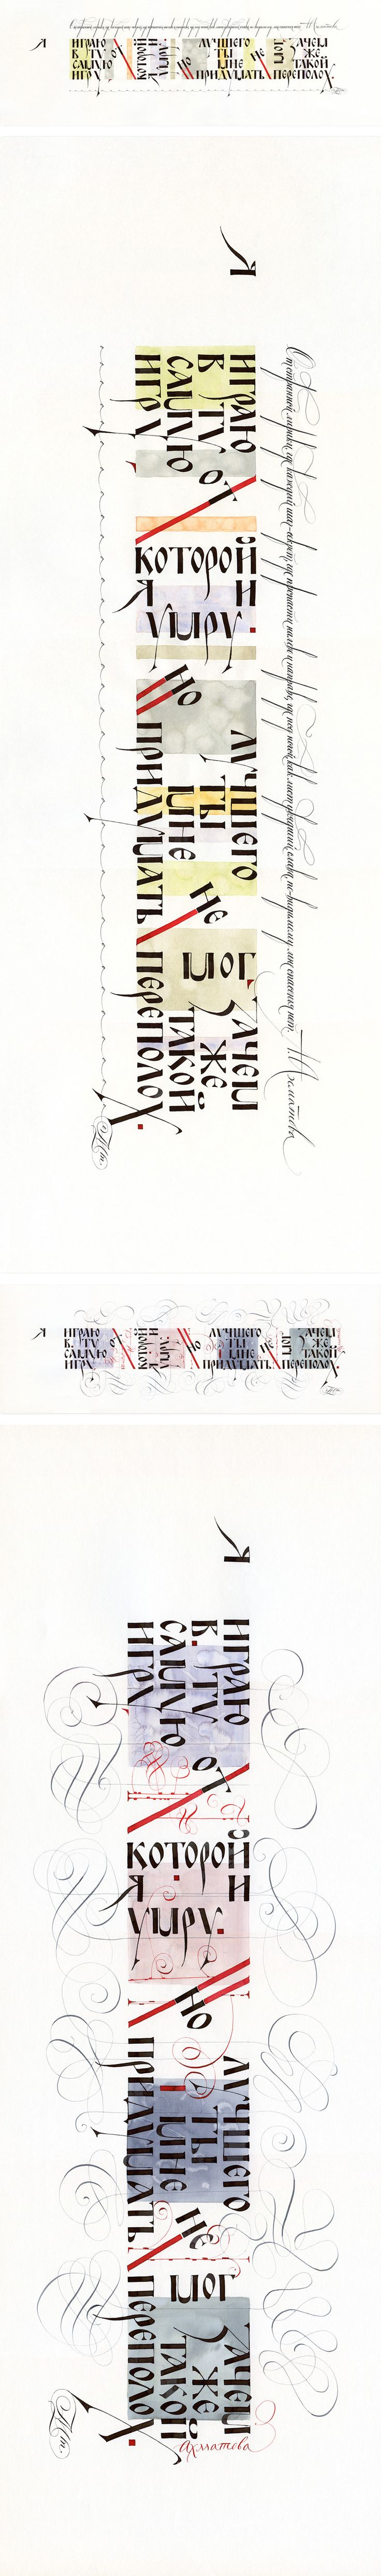 Some works made for Svyato Cyrillic and Rutenia font & calligraphy festivals. 2009, 2010